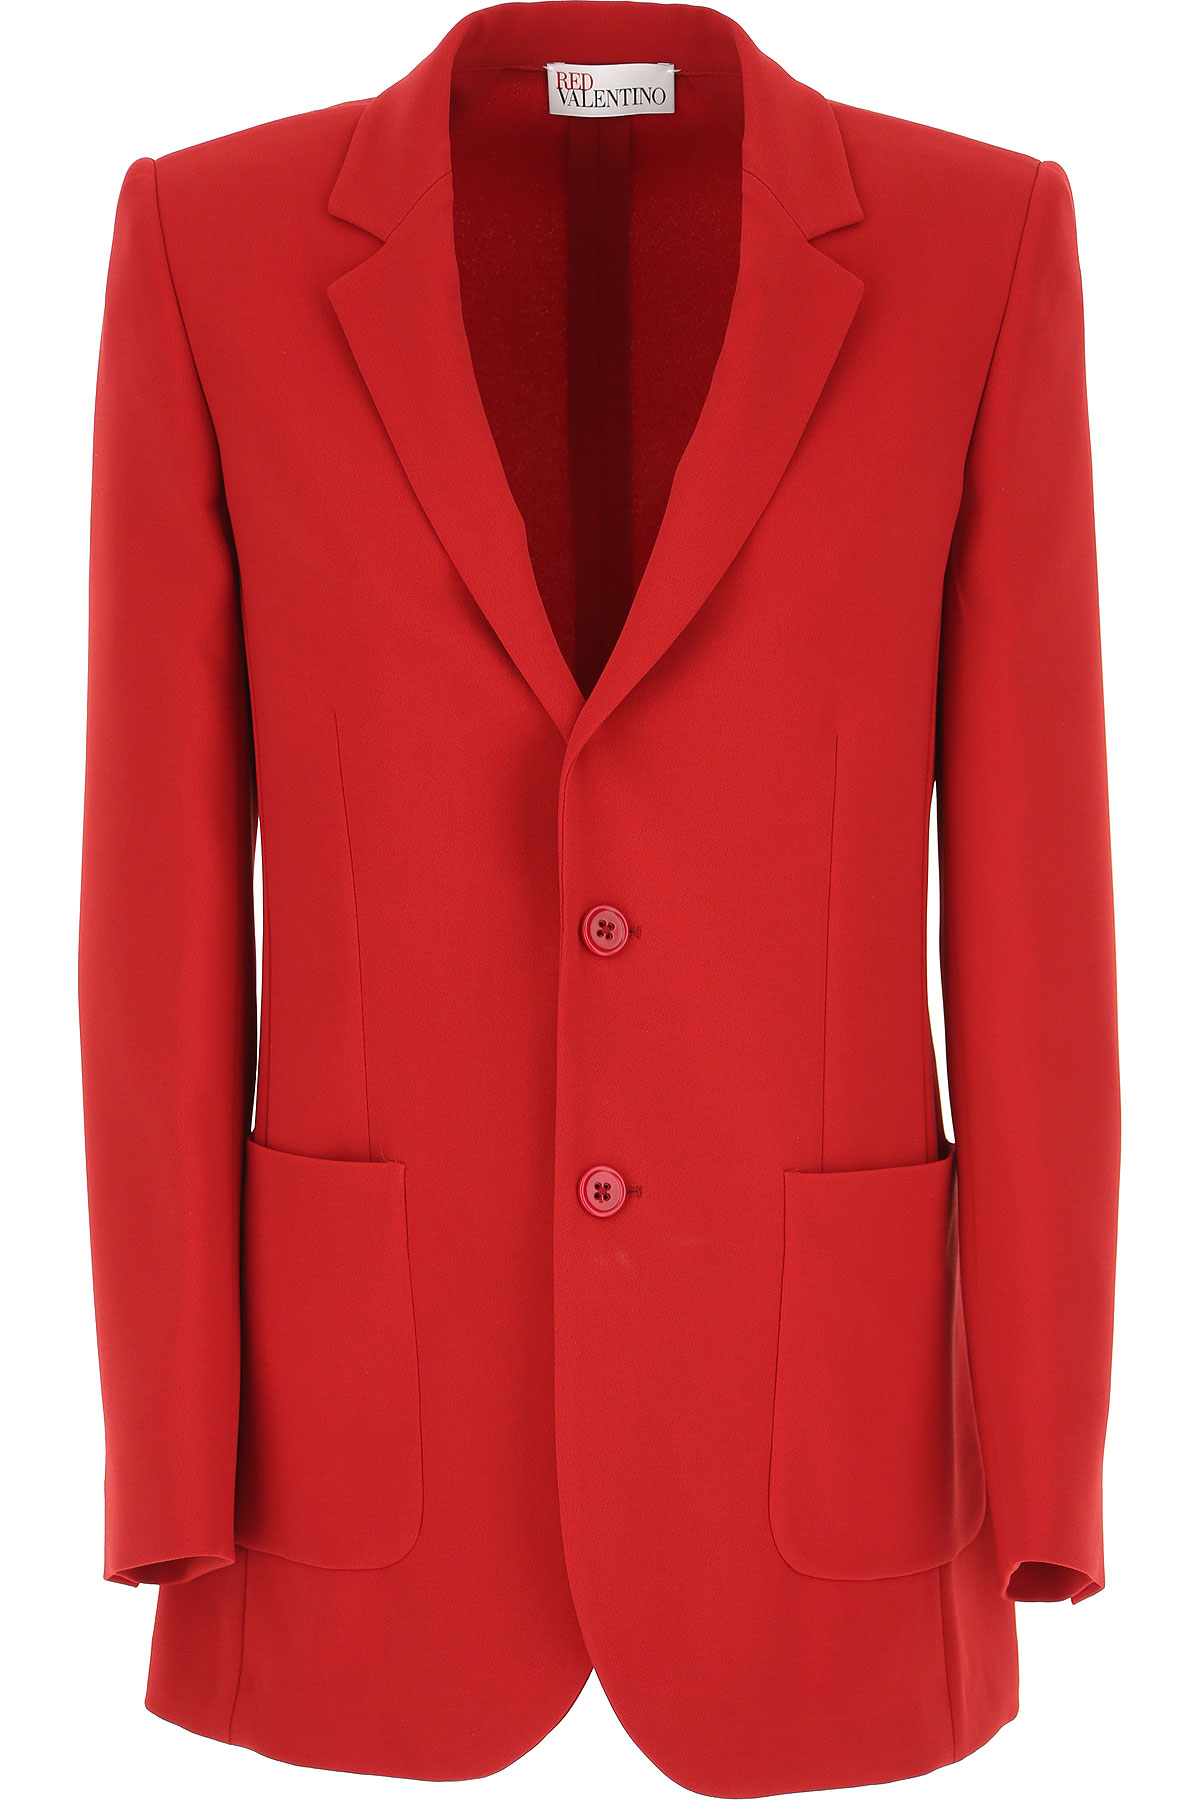 RED Valentino Blazer for Women On Sale, Red, acetate, 2019, 4 6 8